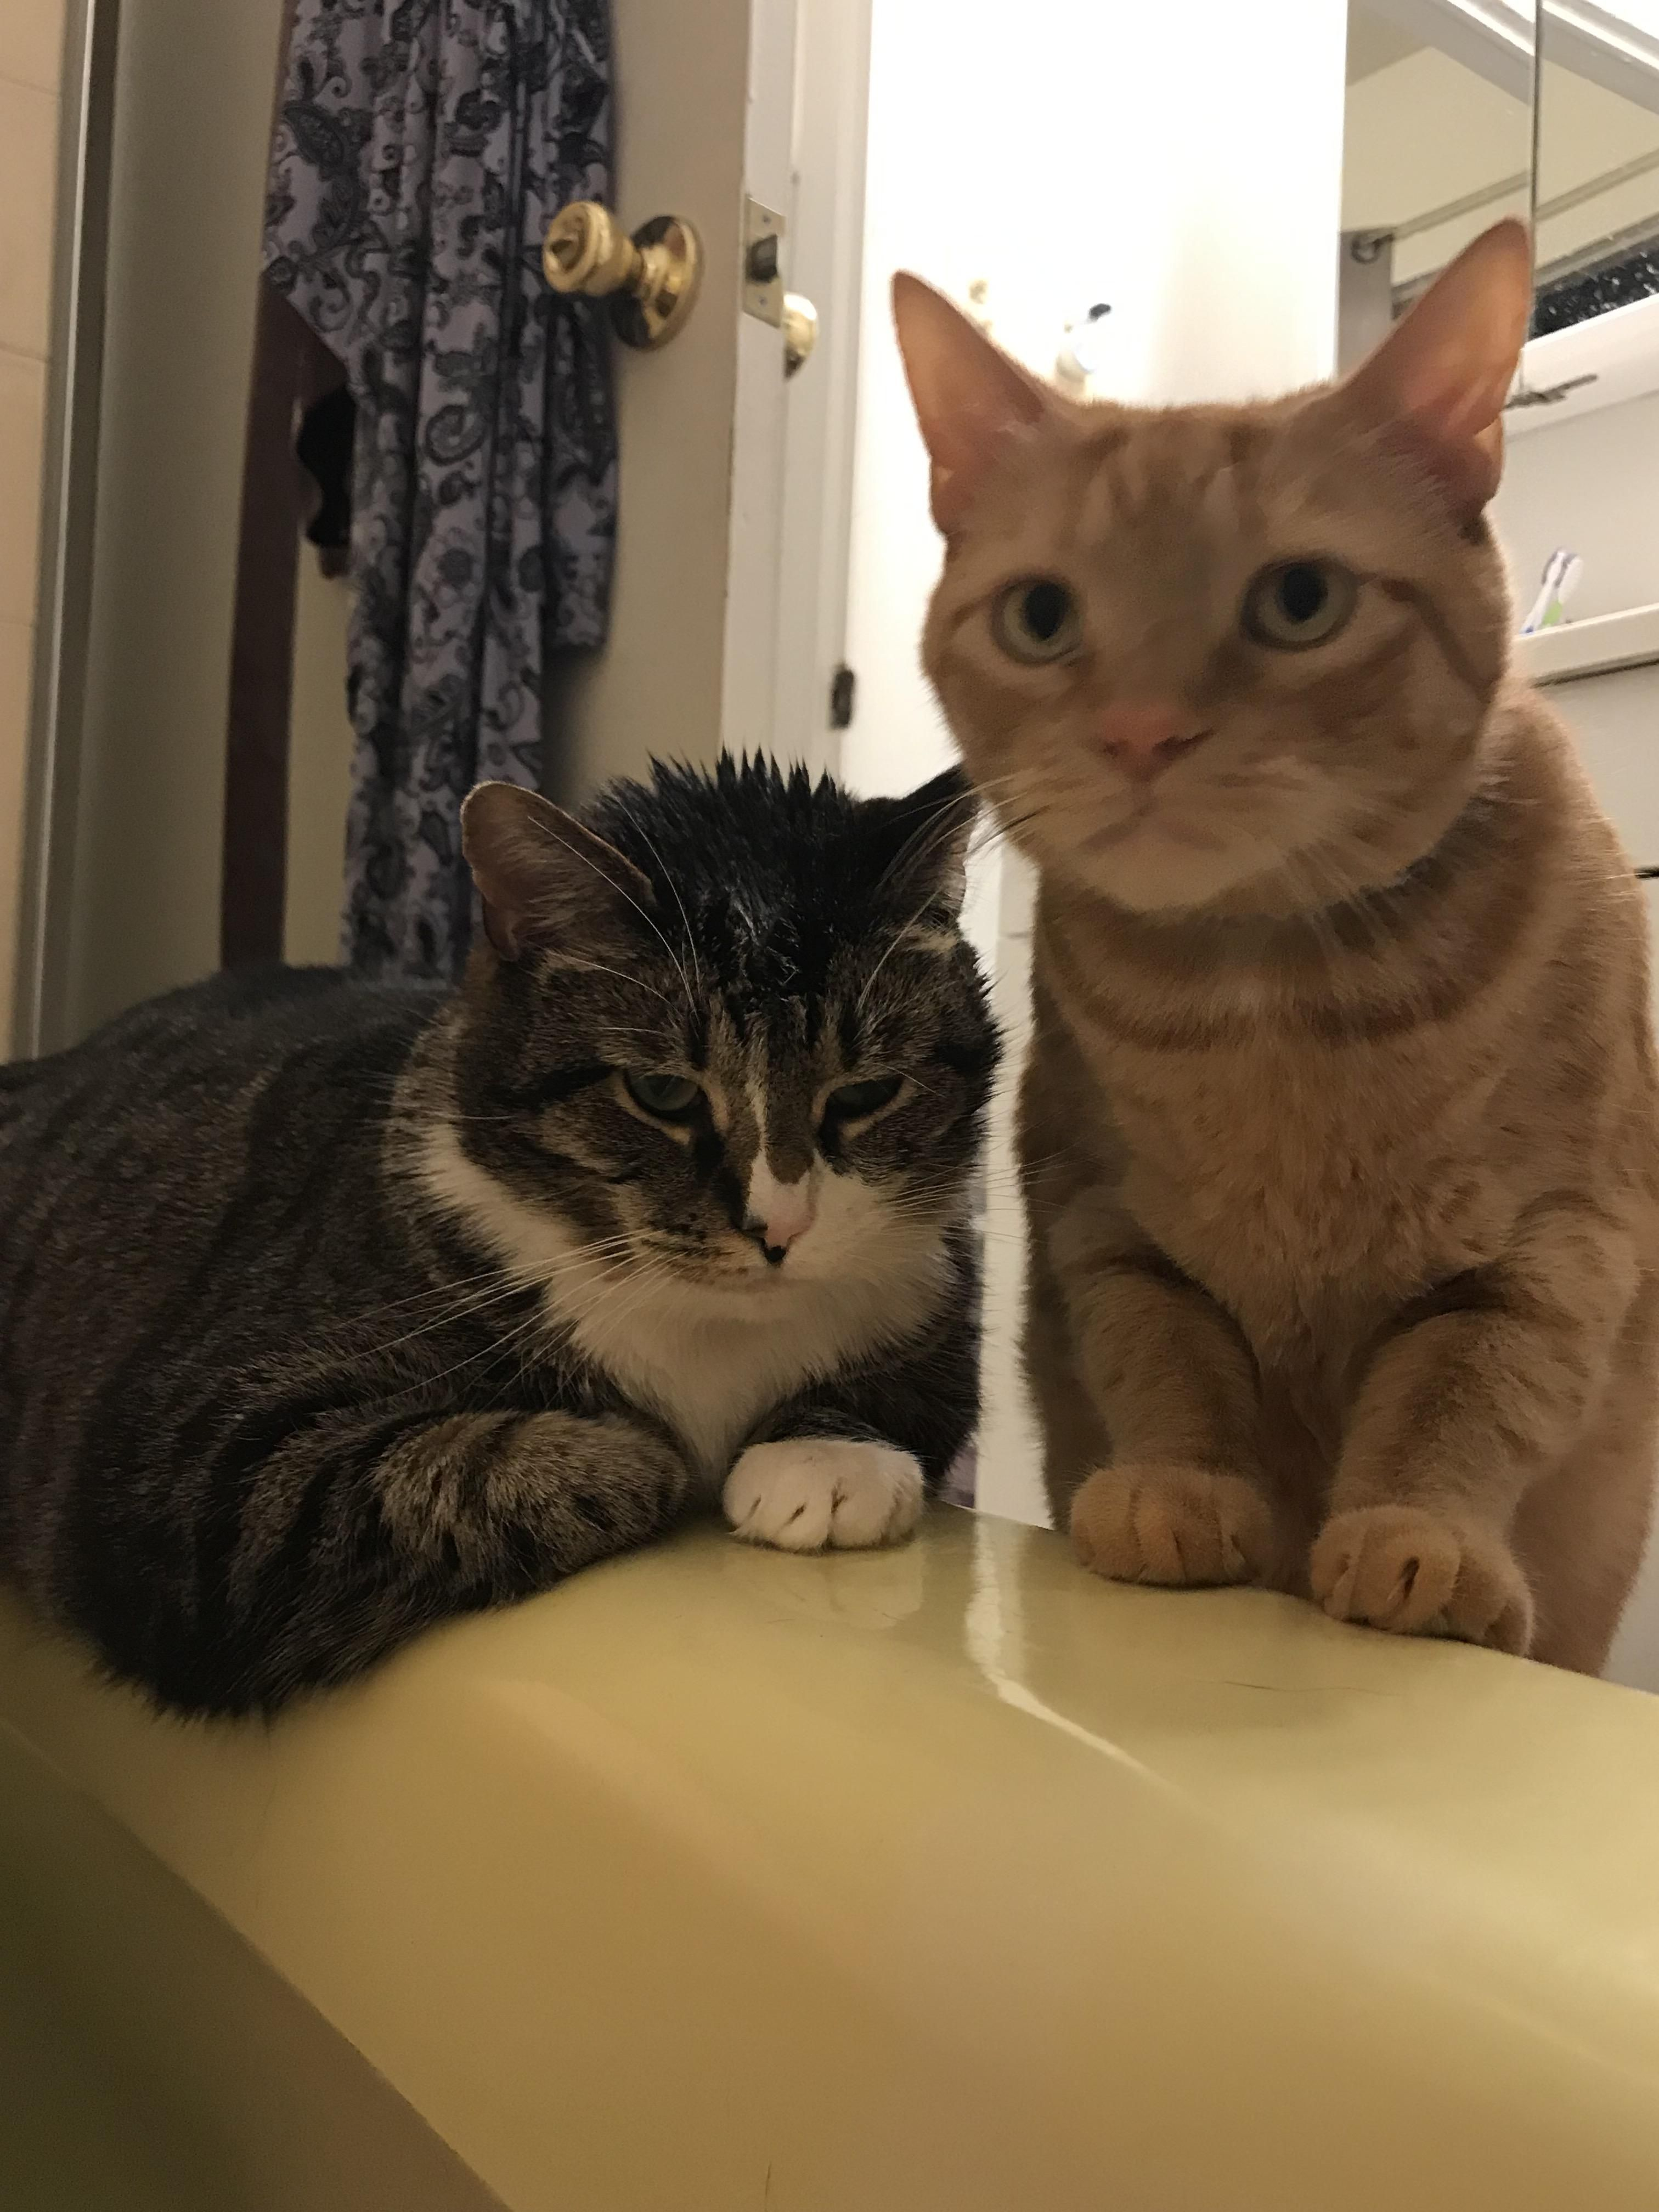 I Had A Bad Day So I Treated Myself To A Bath Thanks Remy And Titan For Making Me Feel Awkward And Better Kitten Pictures Cute Cats Cute Cats And Kittens